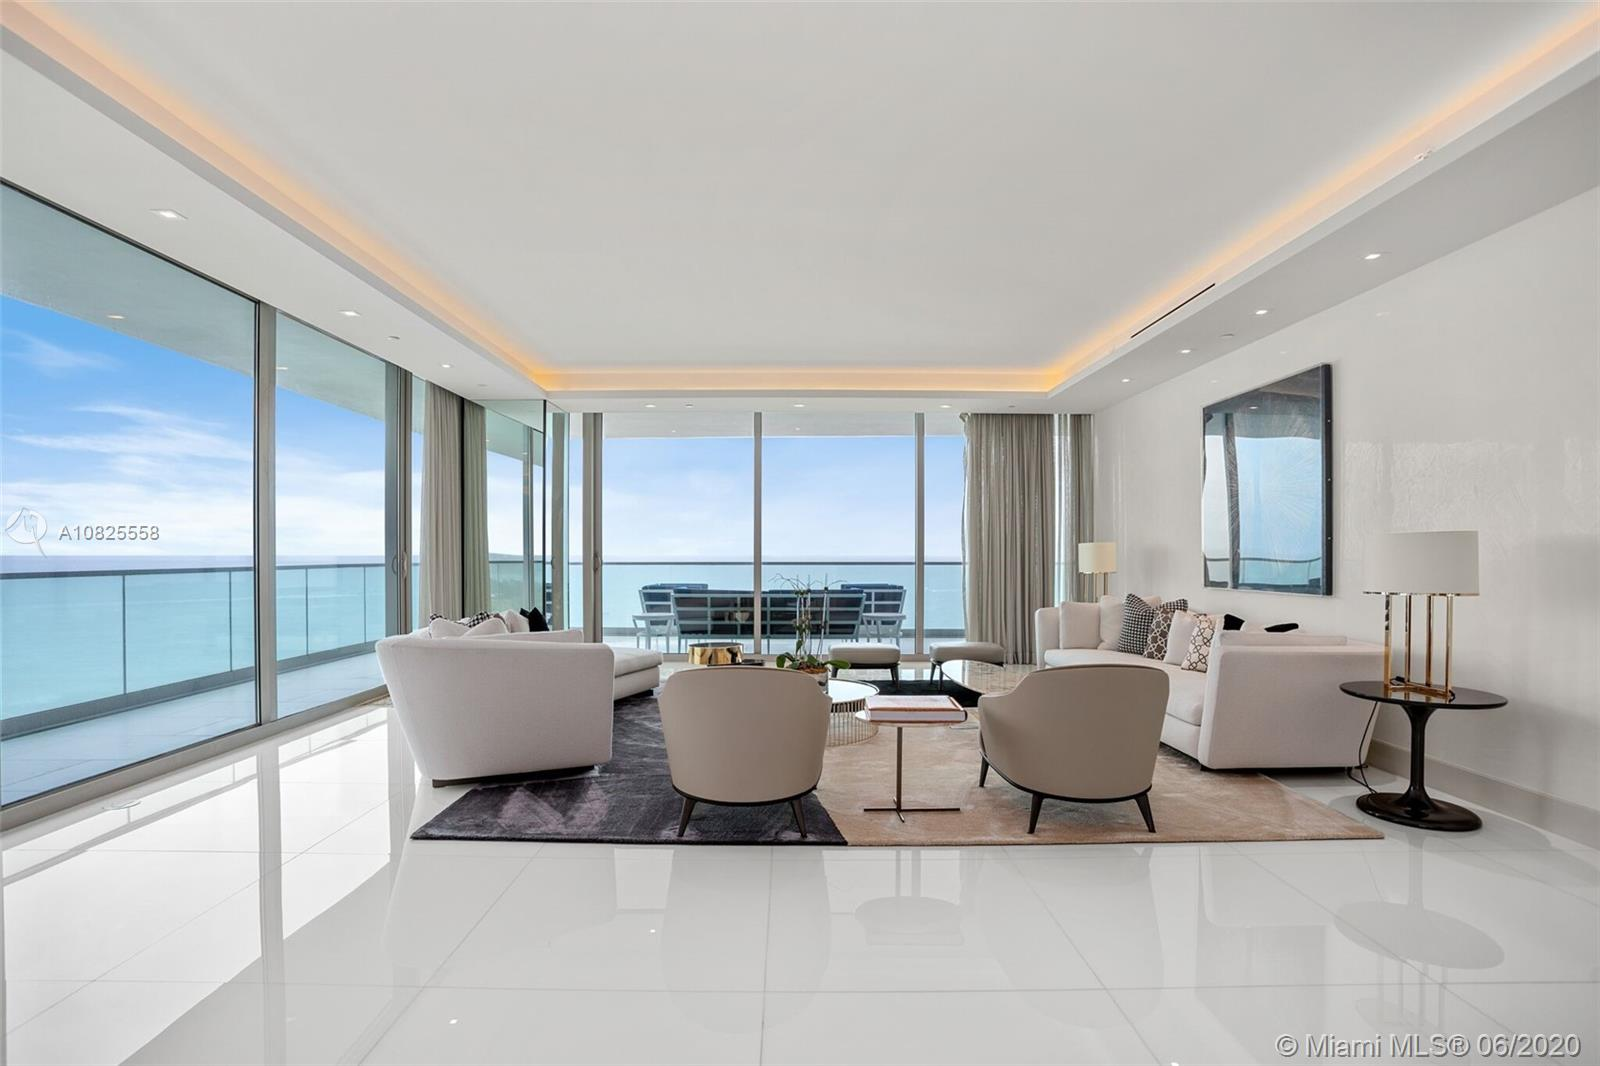 10203 Collins Ave #1001 Property Photo - Bal Harbour, FL real estate listing